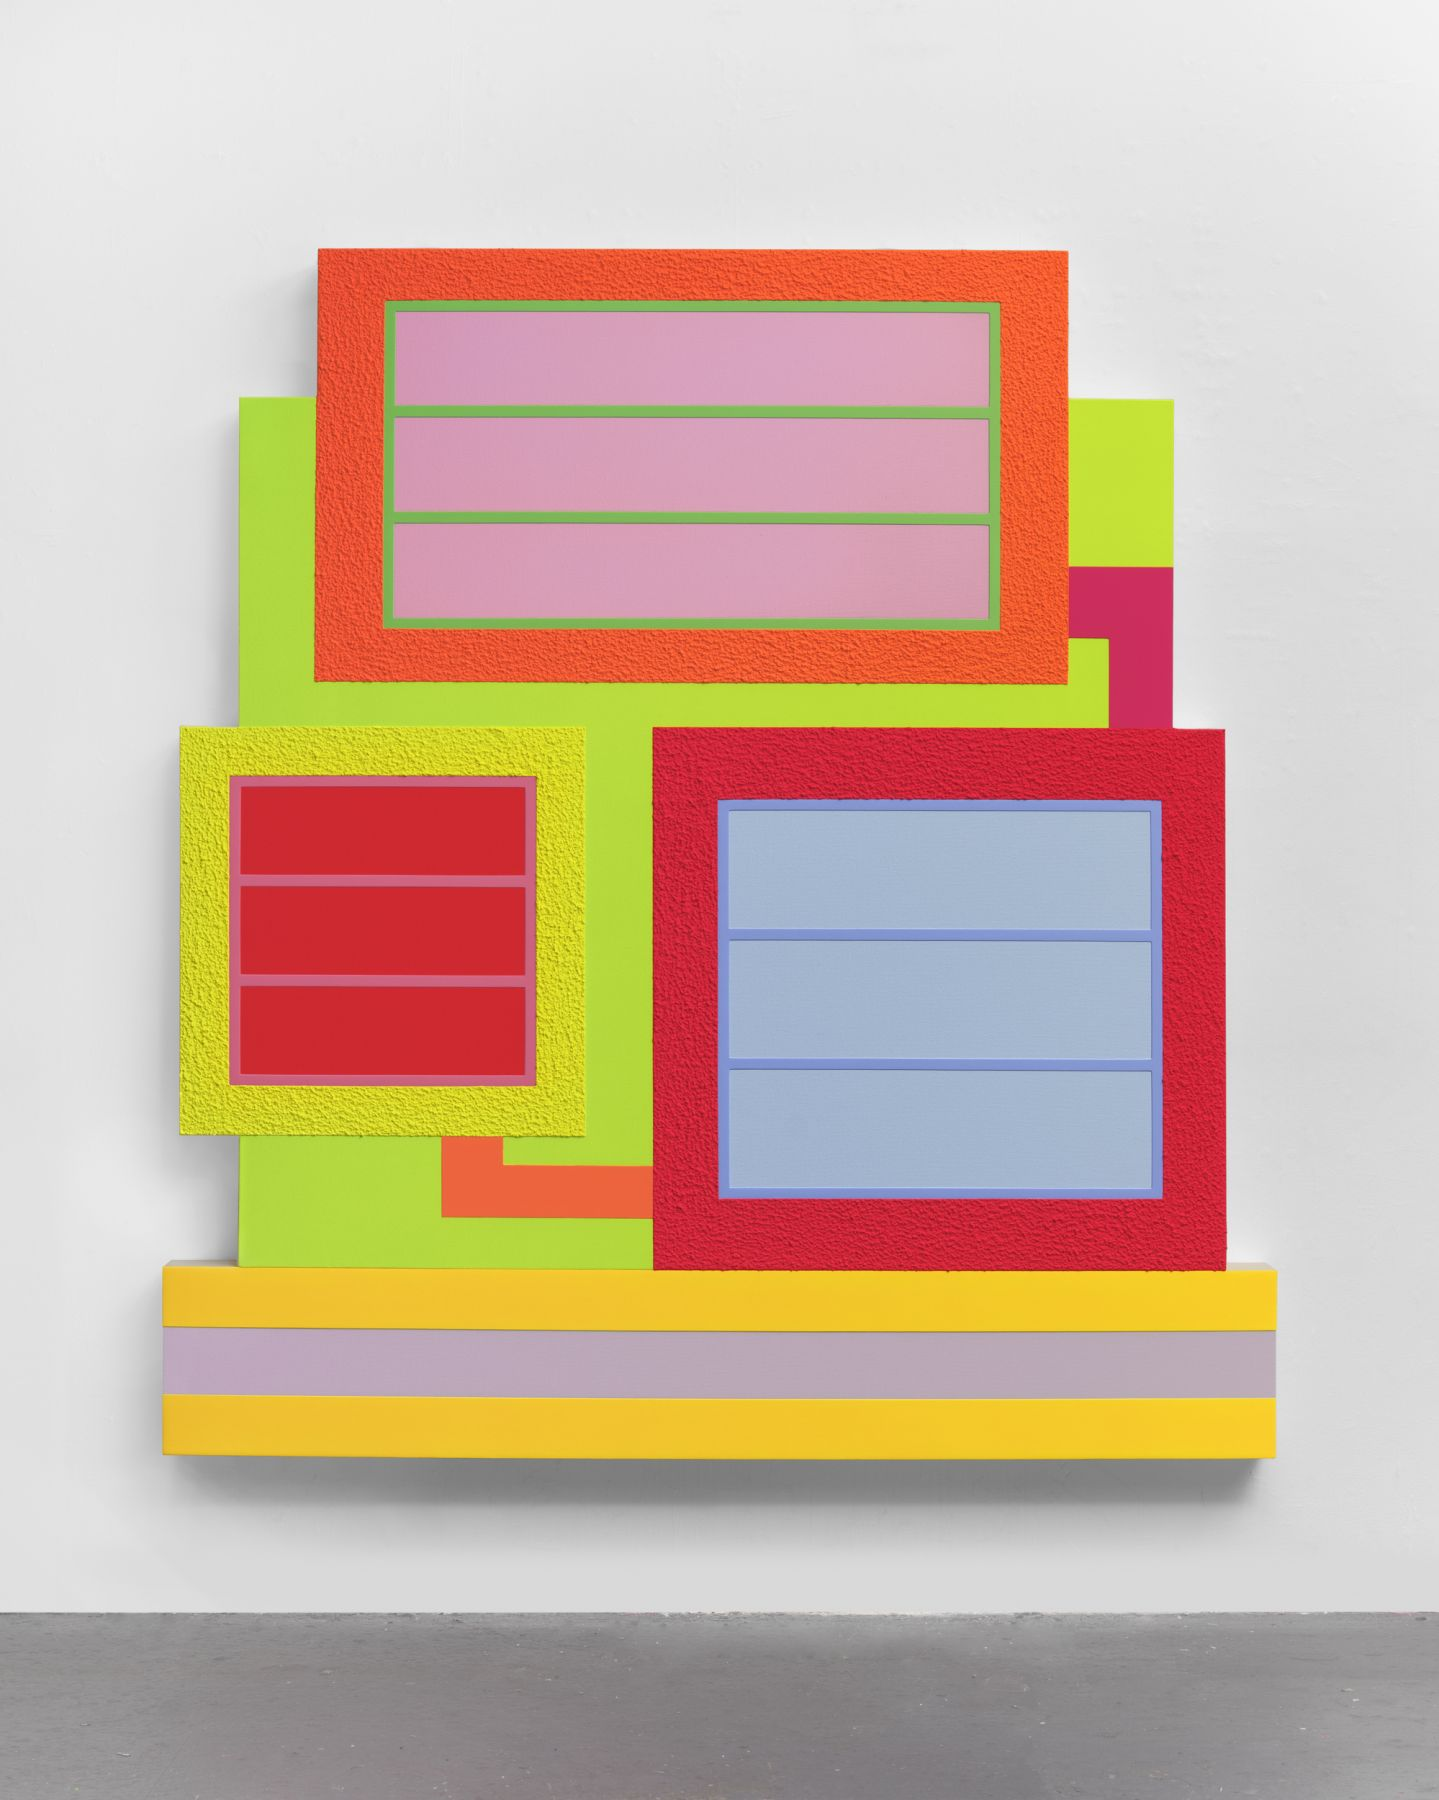 Peter Halley, Hesperos, 2019. Acrylic, fluorescent acrylic and Roll-a-Tex on canvas.